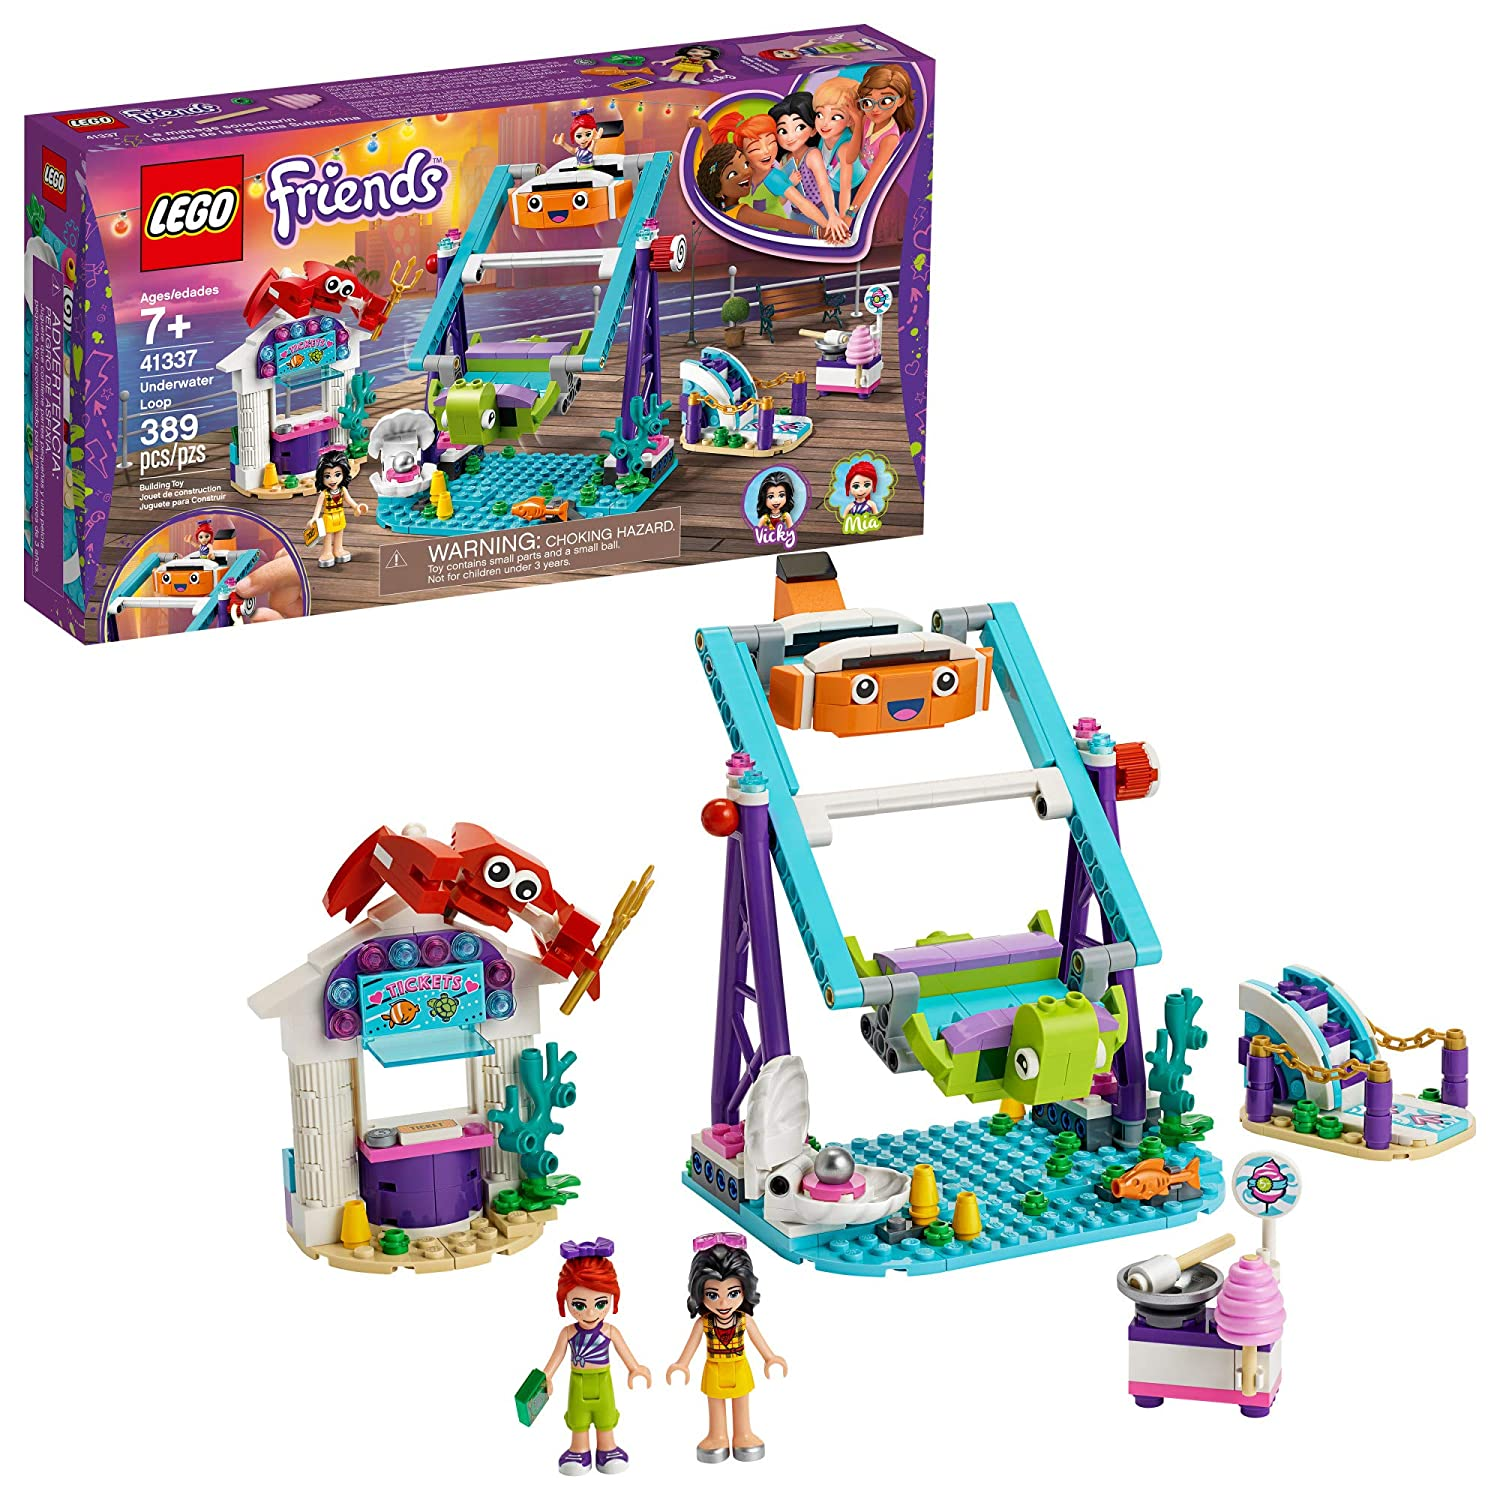 LEGO Friends Underwater Loop 41337 Building Kit (389 Pieces)